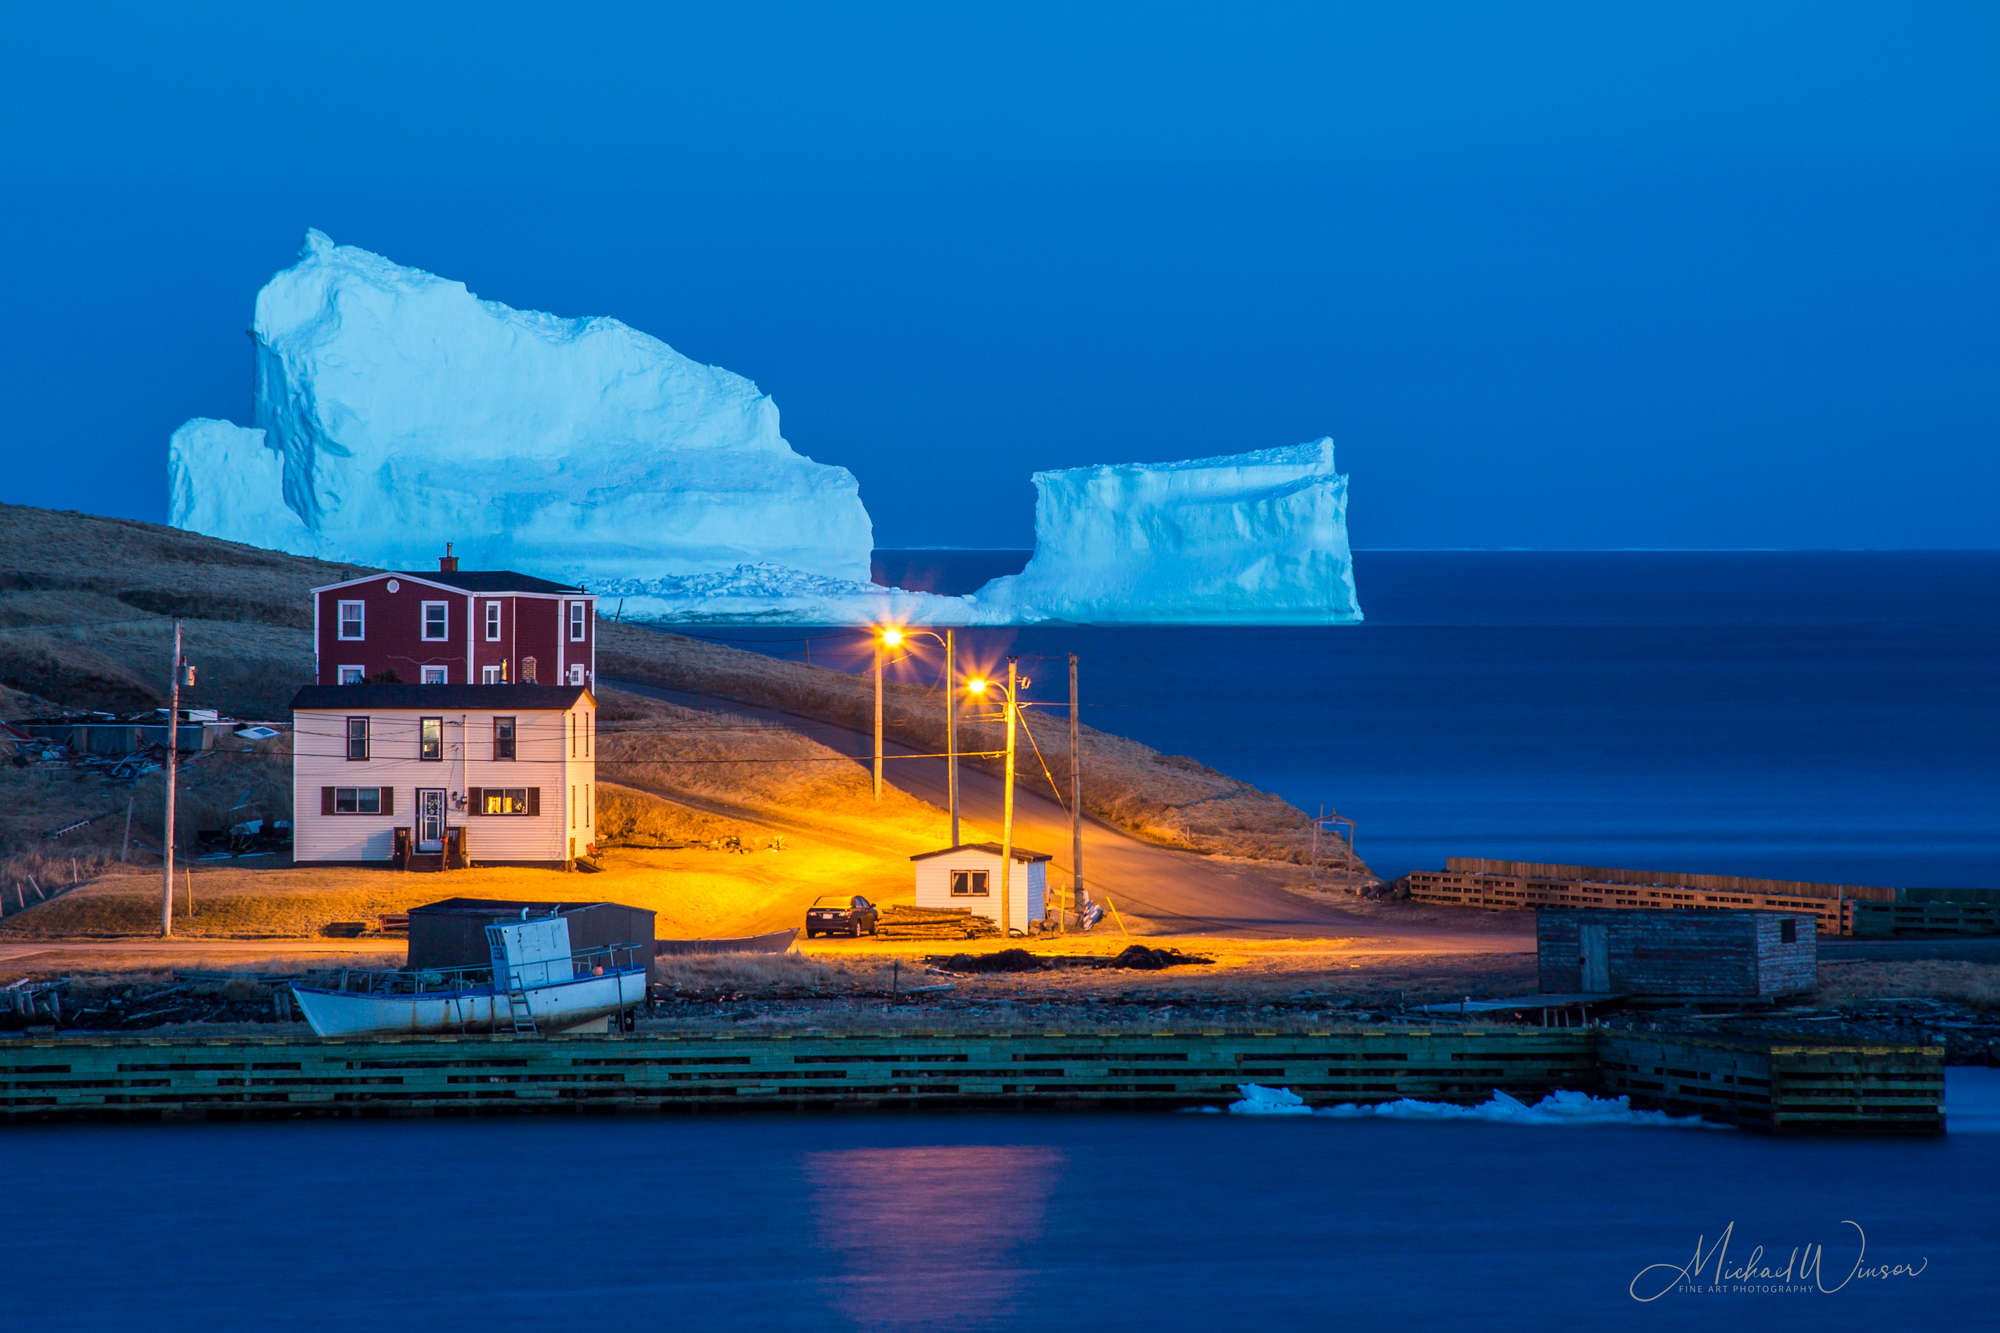 Icebergs, Whales, Birds workshop- 2 days - Travel Newfoundland Photographing Icebergs, Whales and Birds.